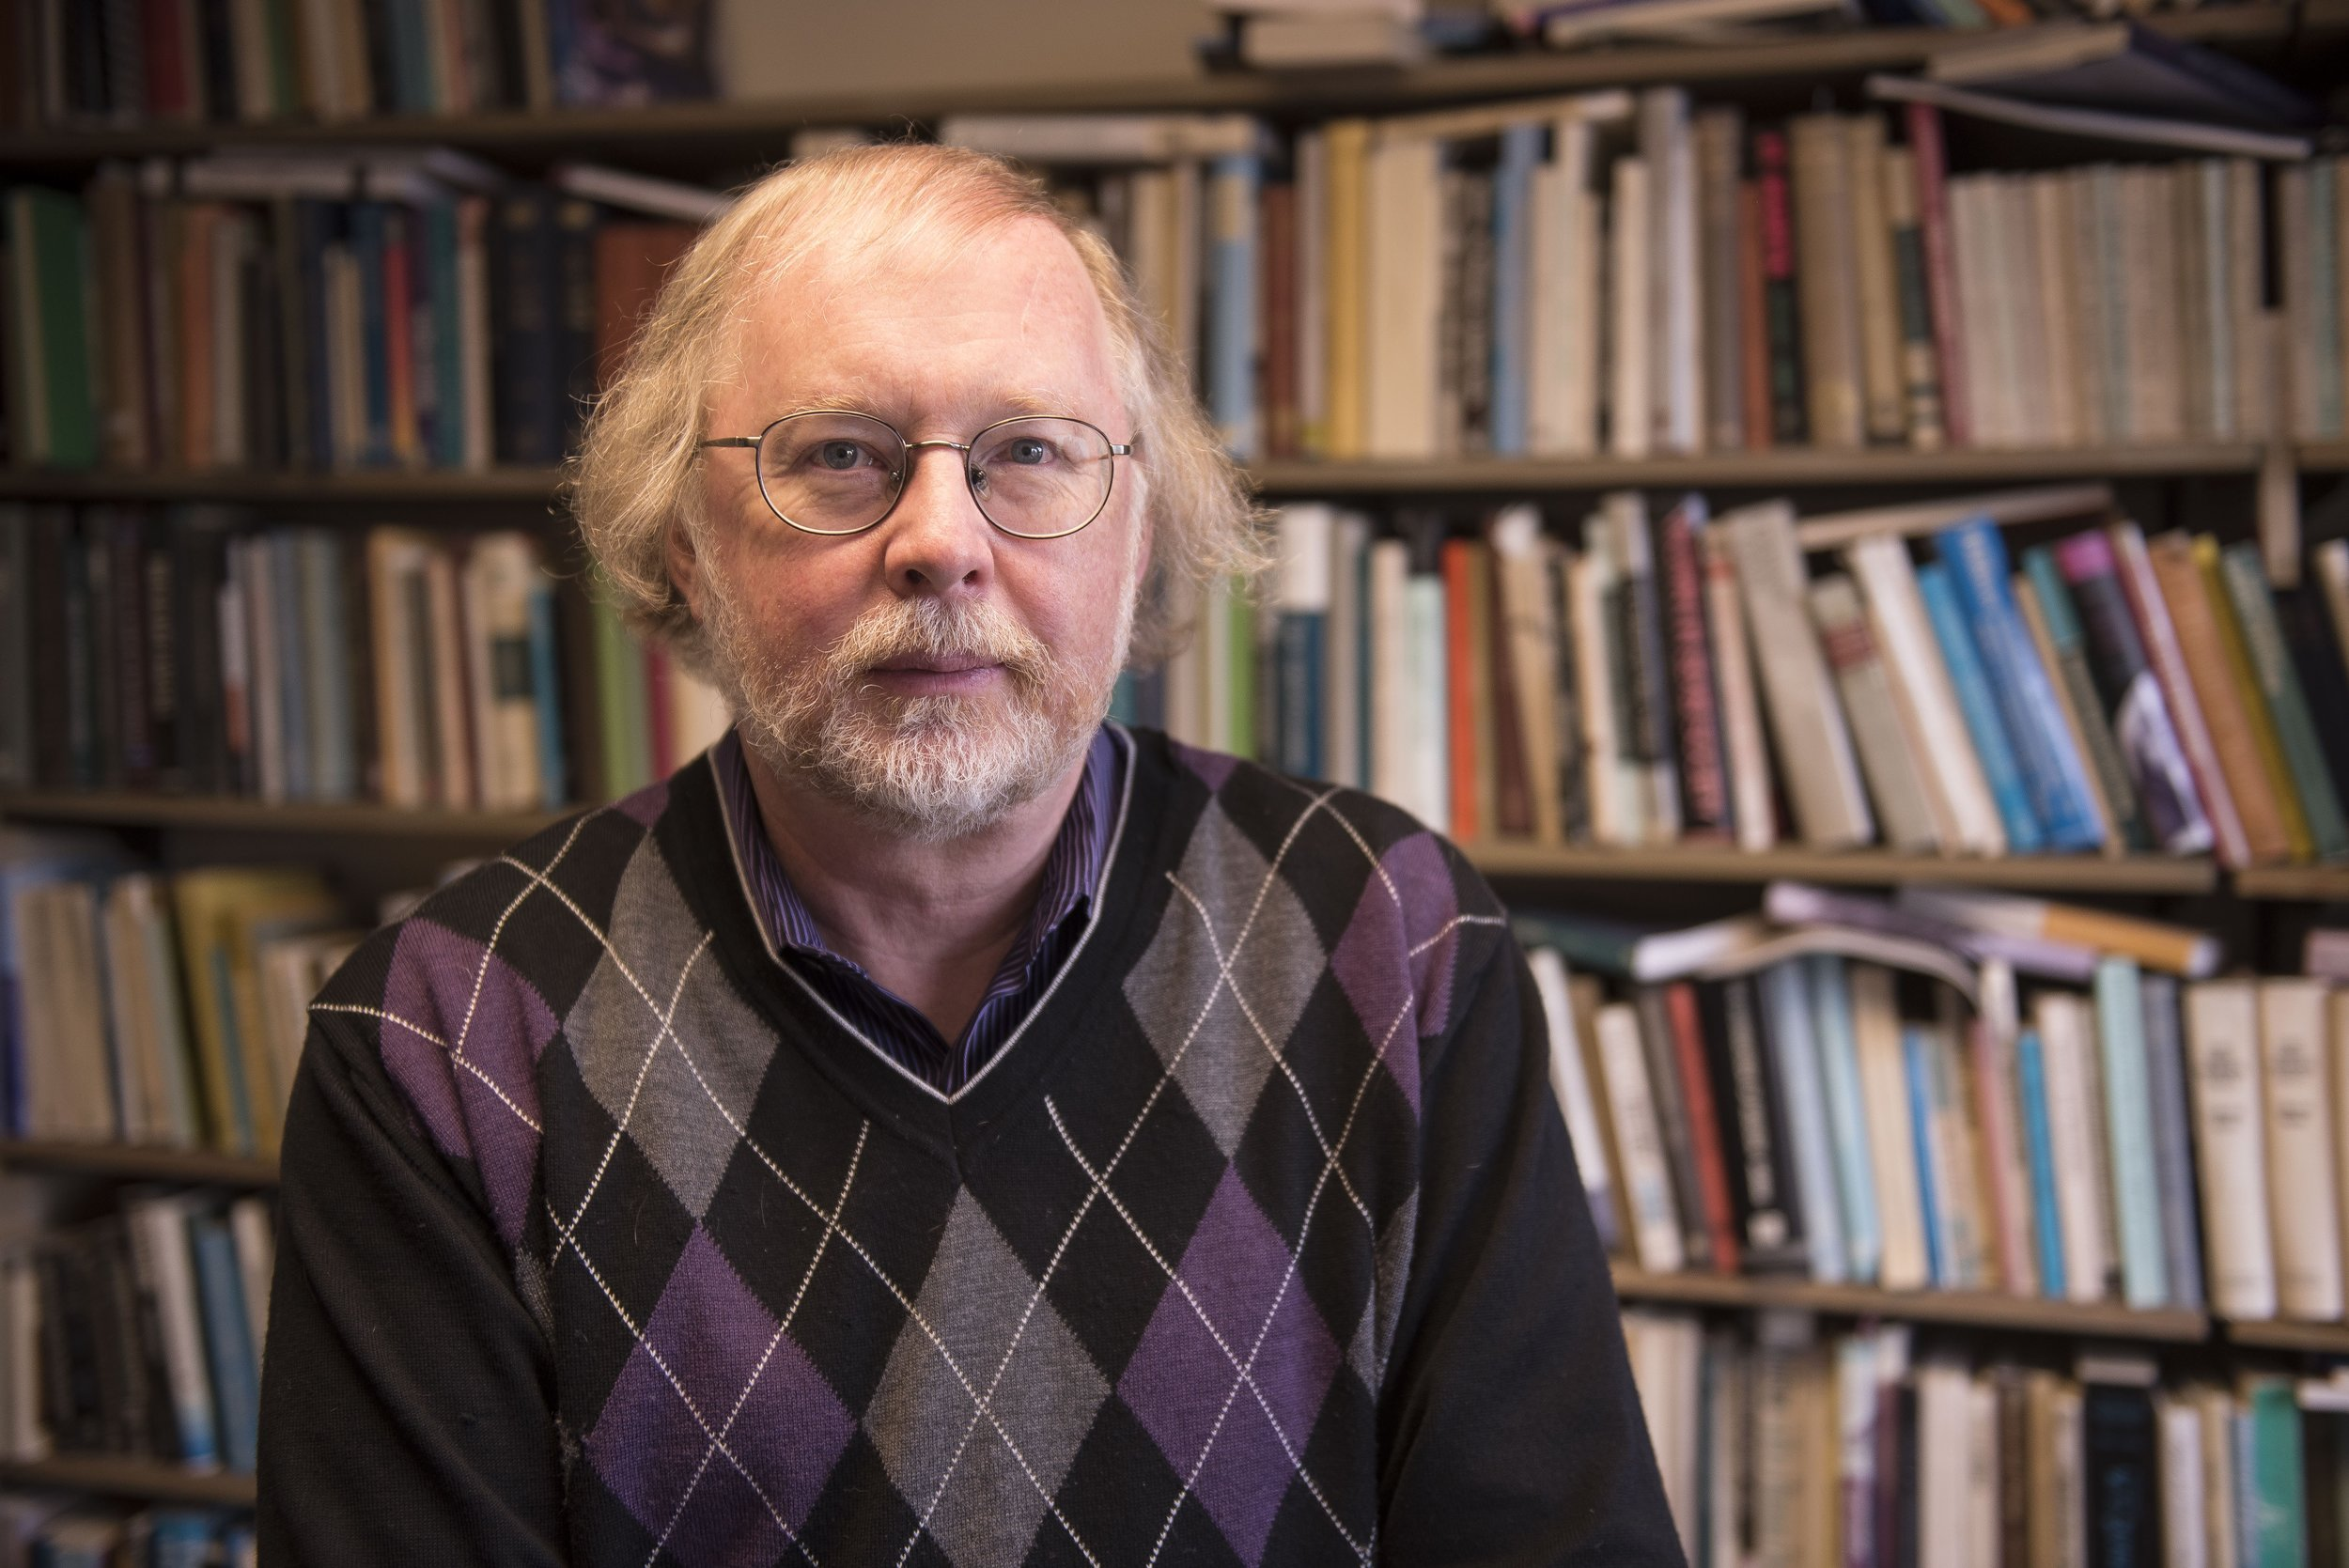 James O. Young, FRSC, is Professor of Philosophy at the University of Victoria. He recently edited a collection of essays,  Semantics of Aesthetic Judgements (Oxford, 2017) , and some of his essays on philosophy of music has been translated into Spanish as   Filosofía de la Música. Respuestas a Peter Kivy ( Calanda, 2017) .